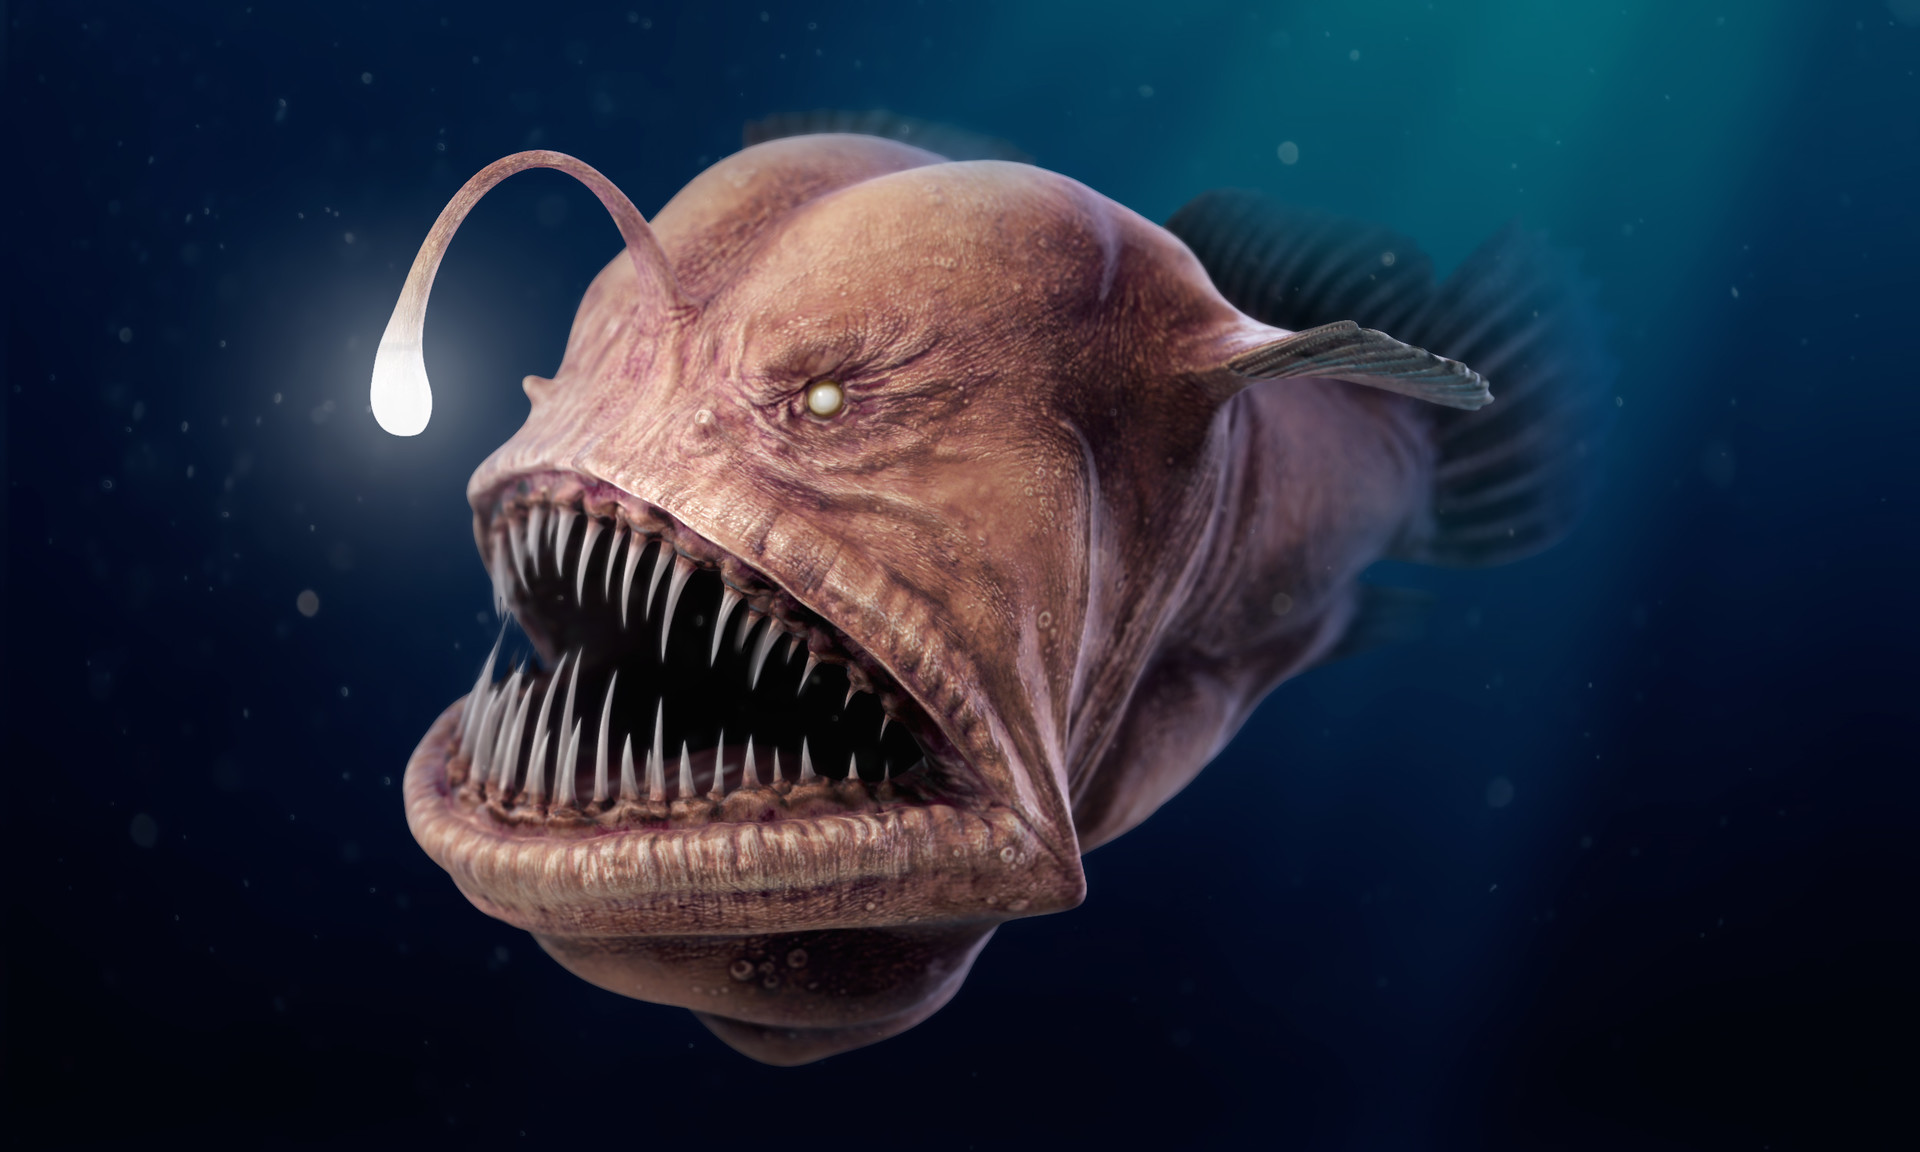 fish with human teeth